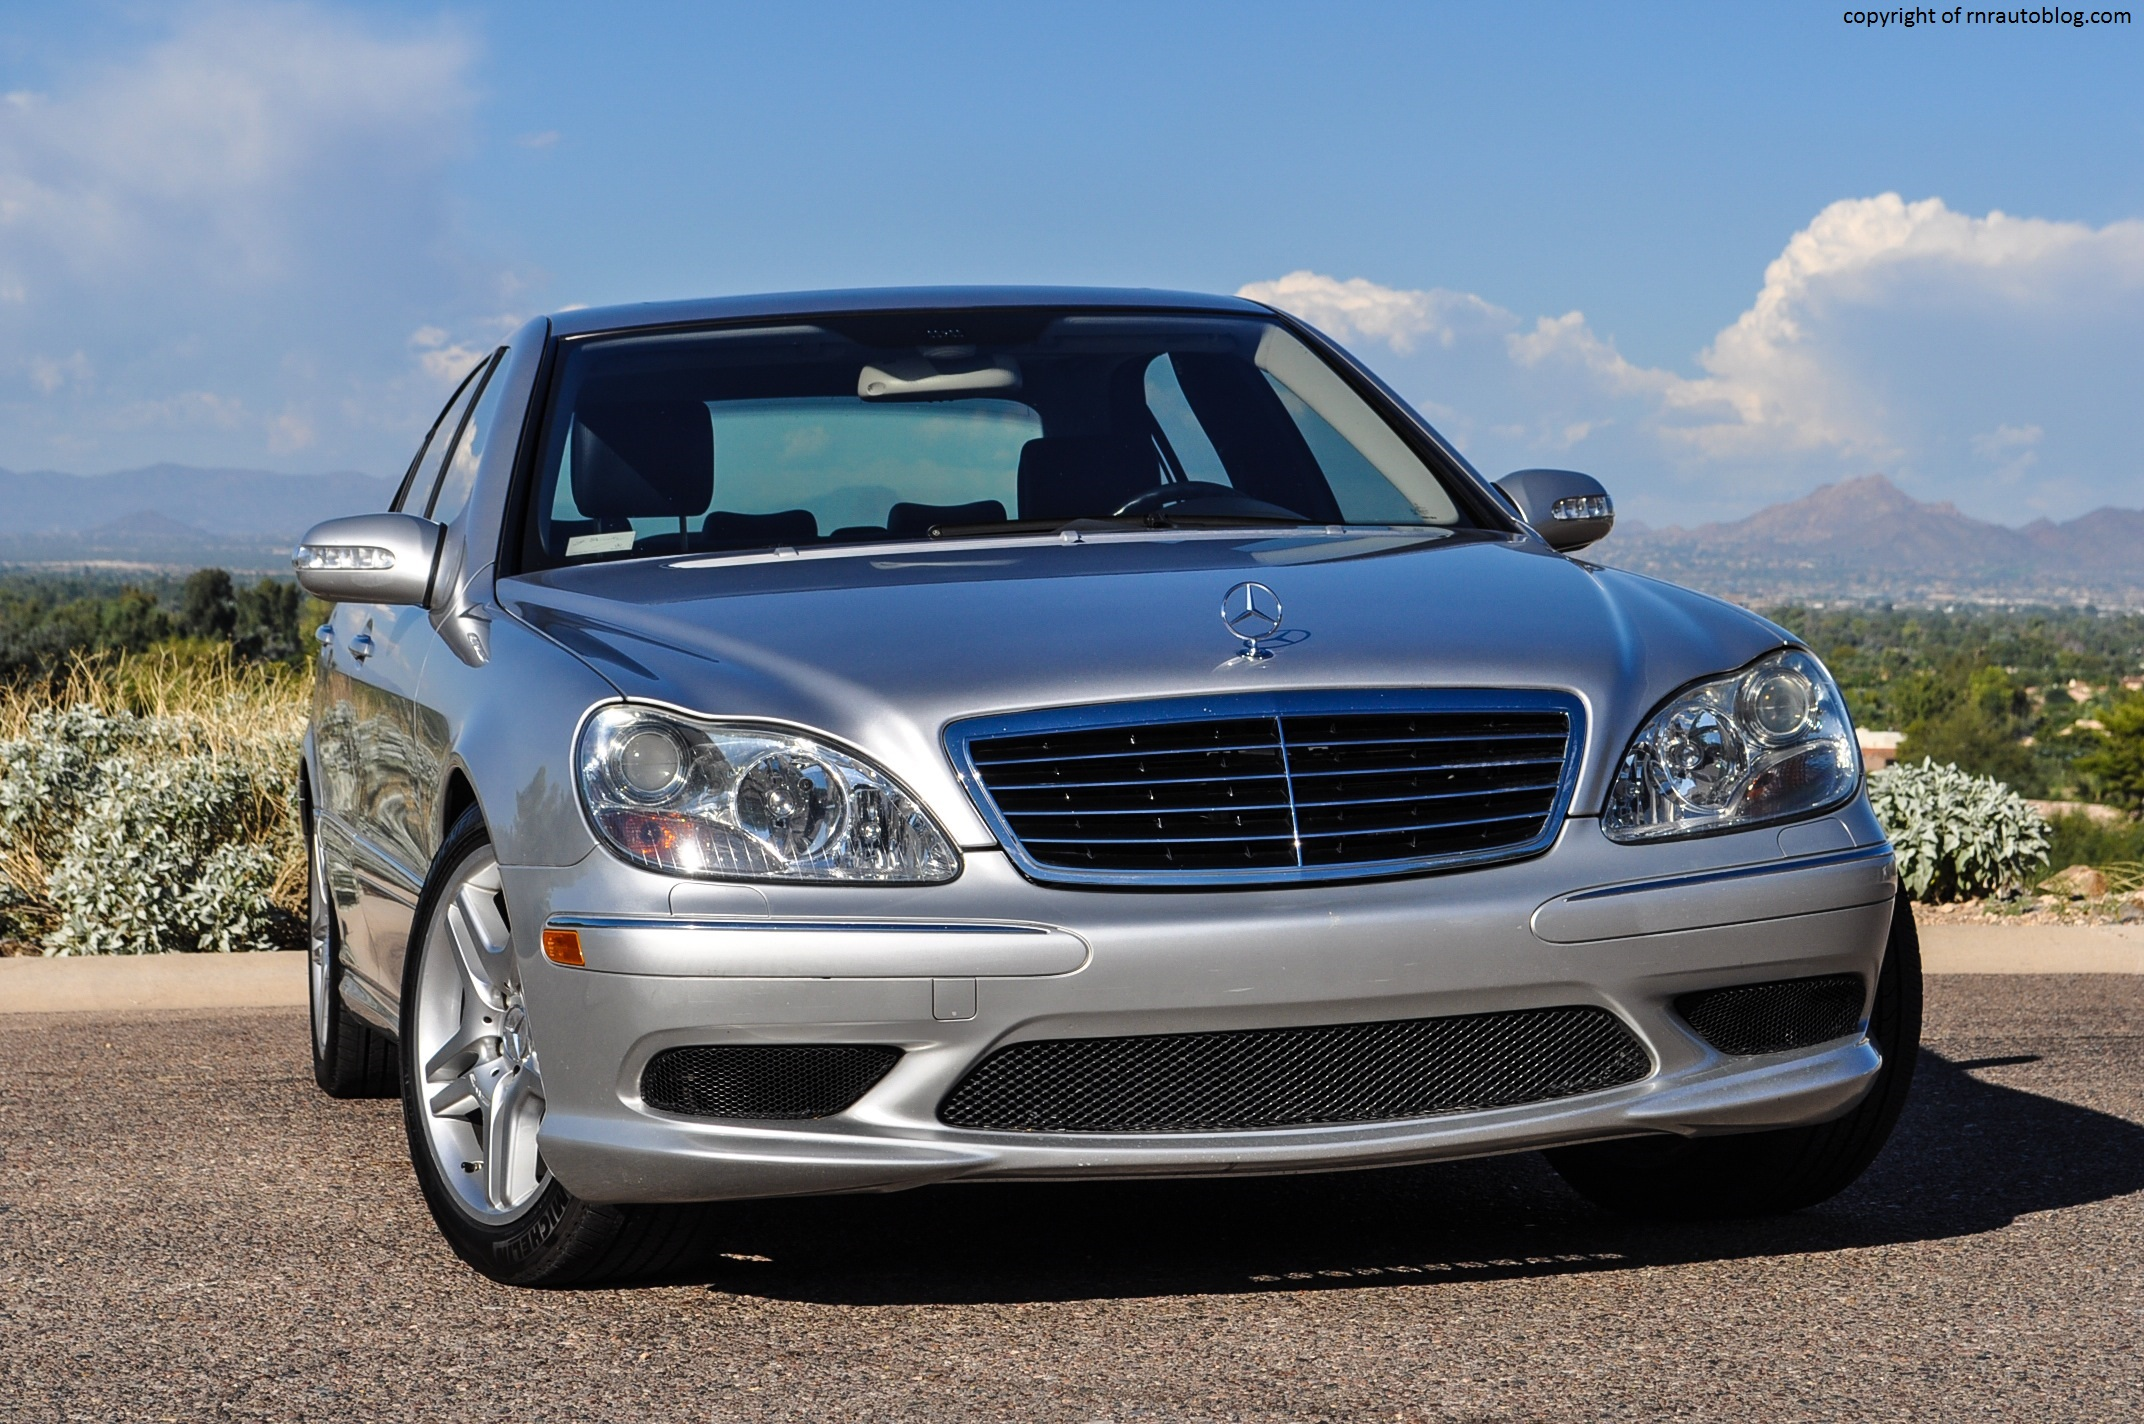 2006 mercedes benz s430 photoshoot rnr automotive blog for S430 mercedes benz